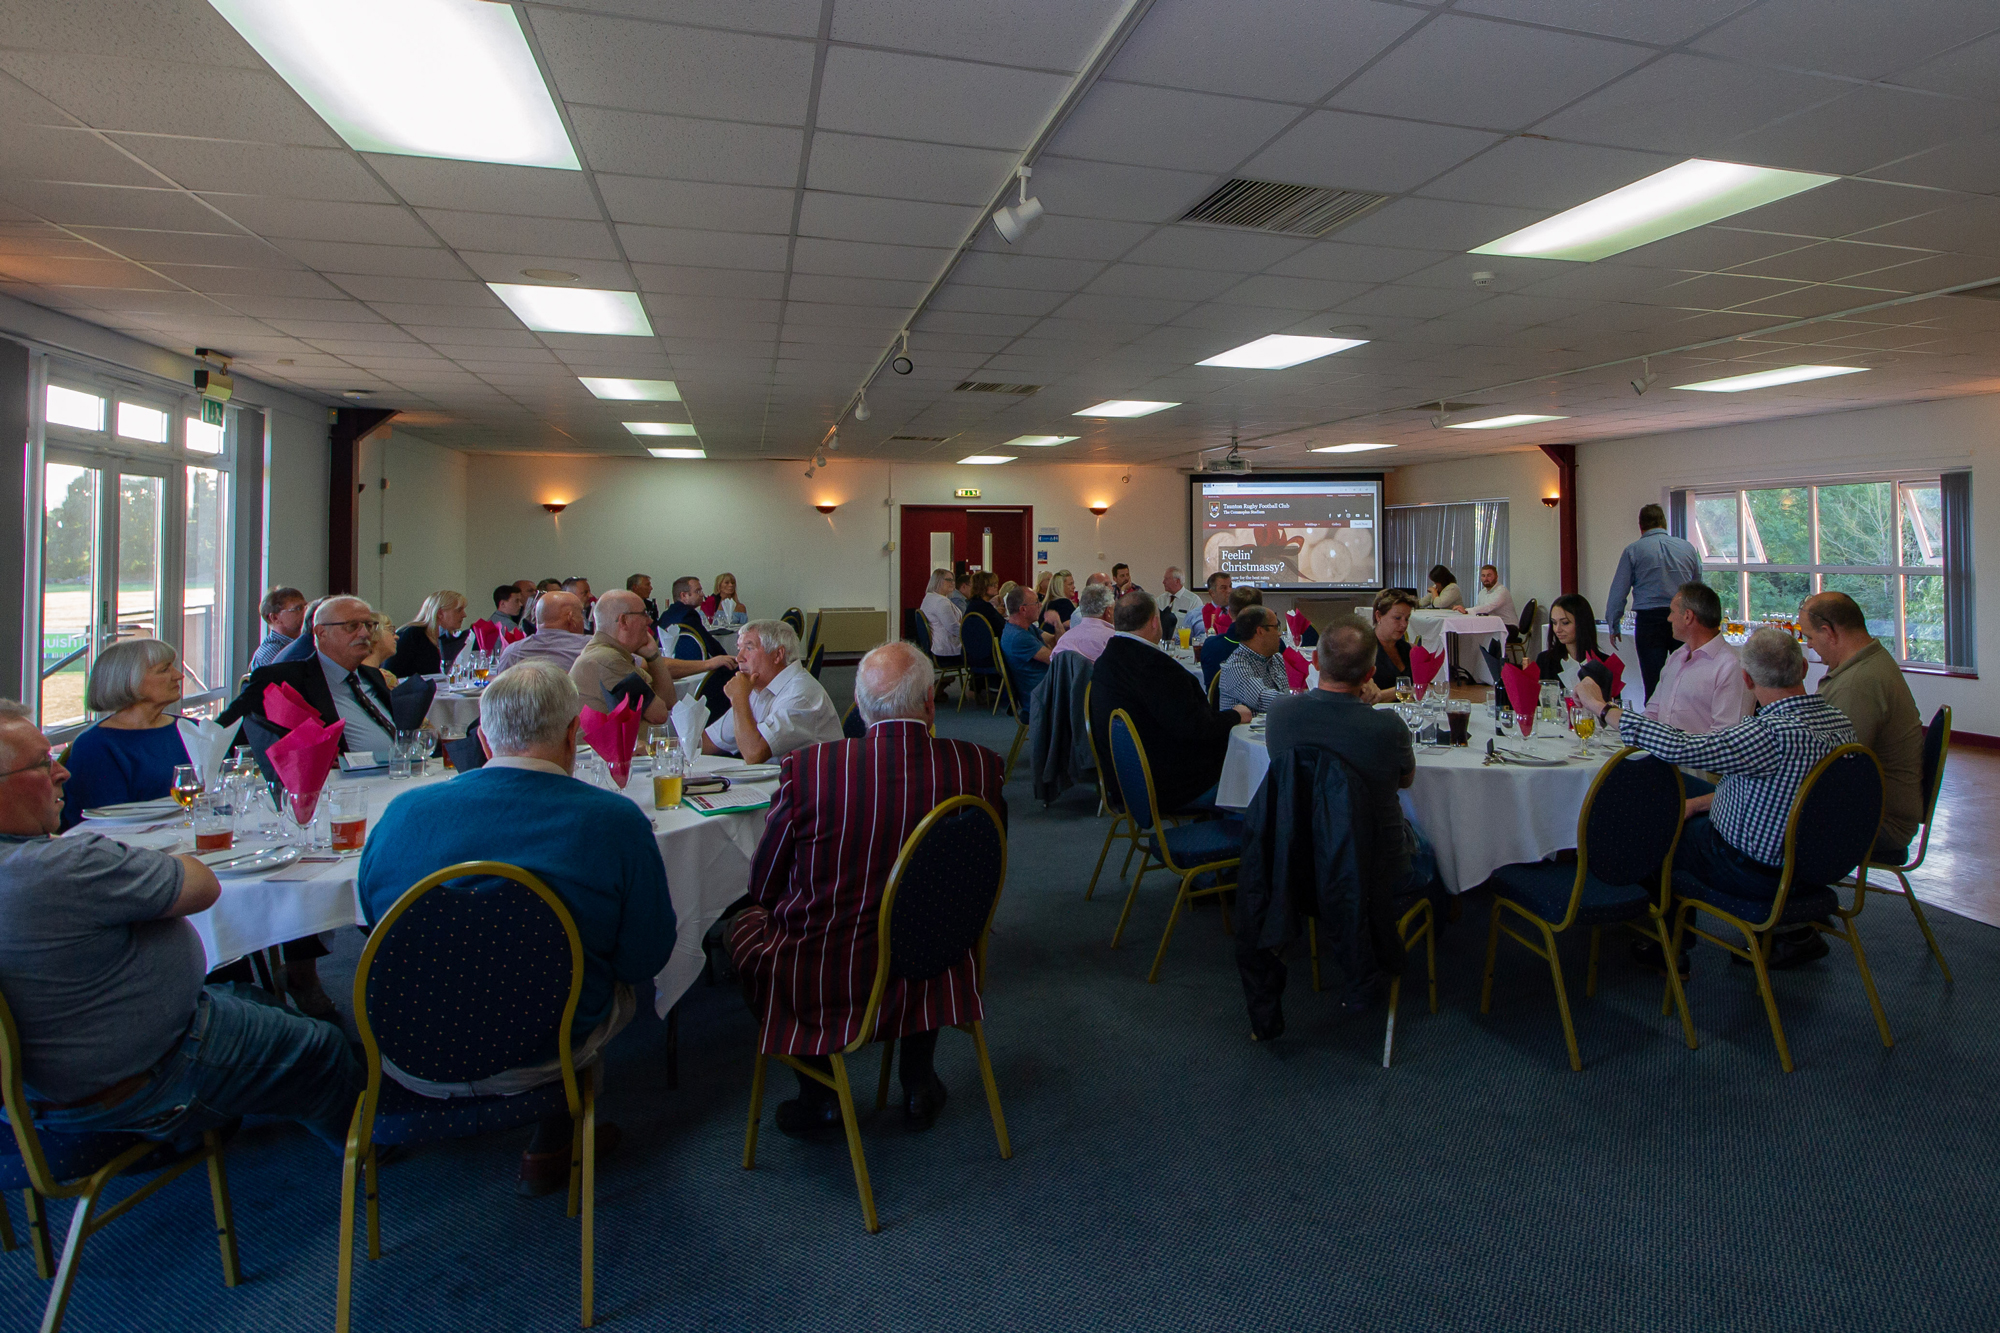 Corporate hospitality at Taunton Rugby Club